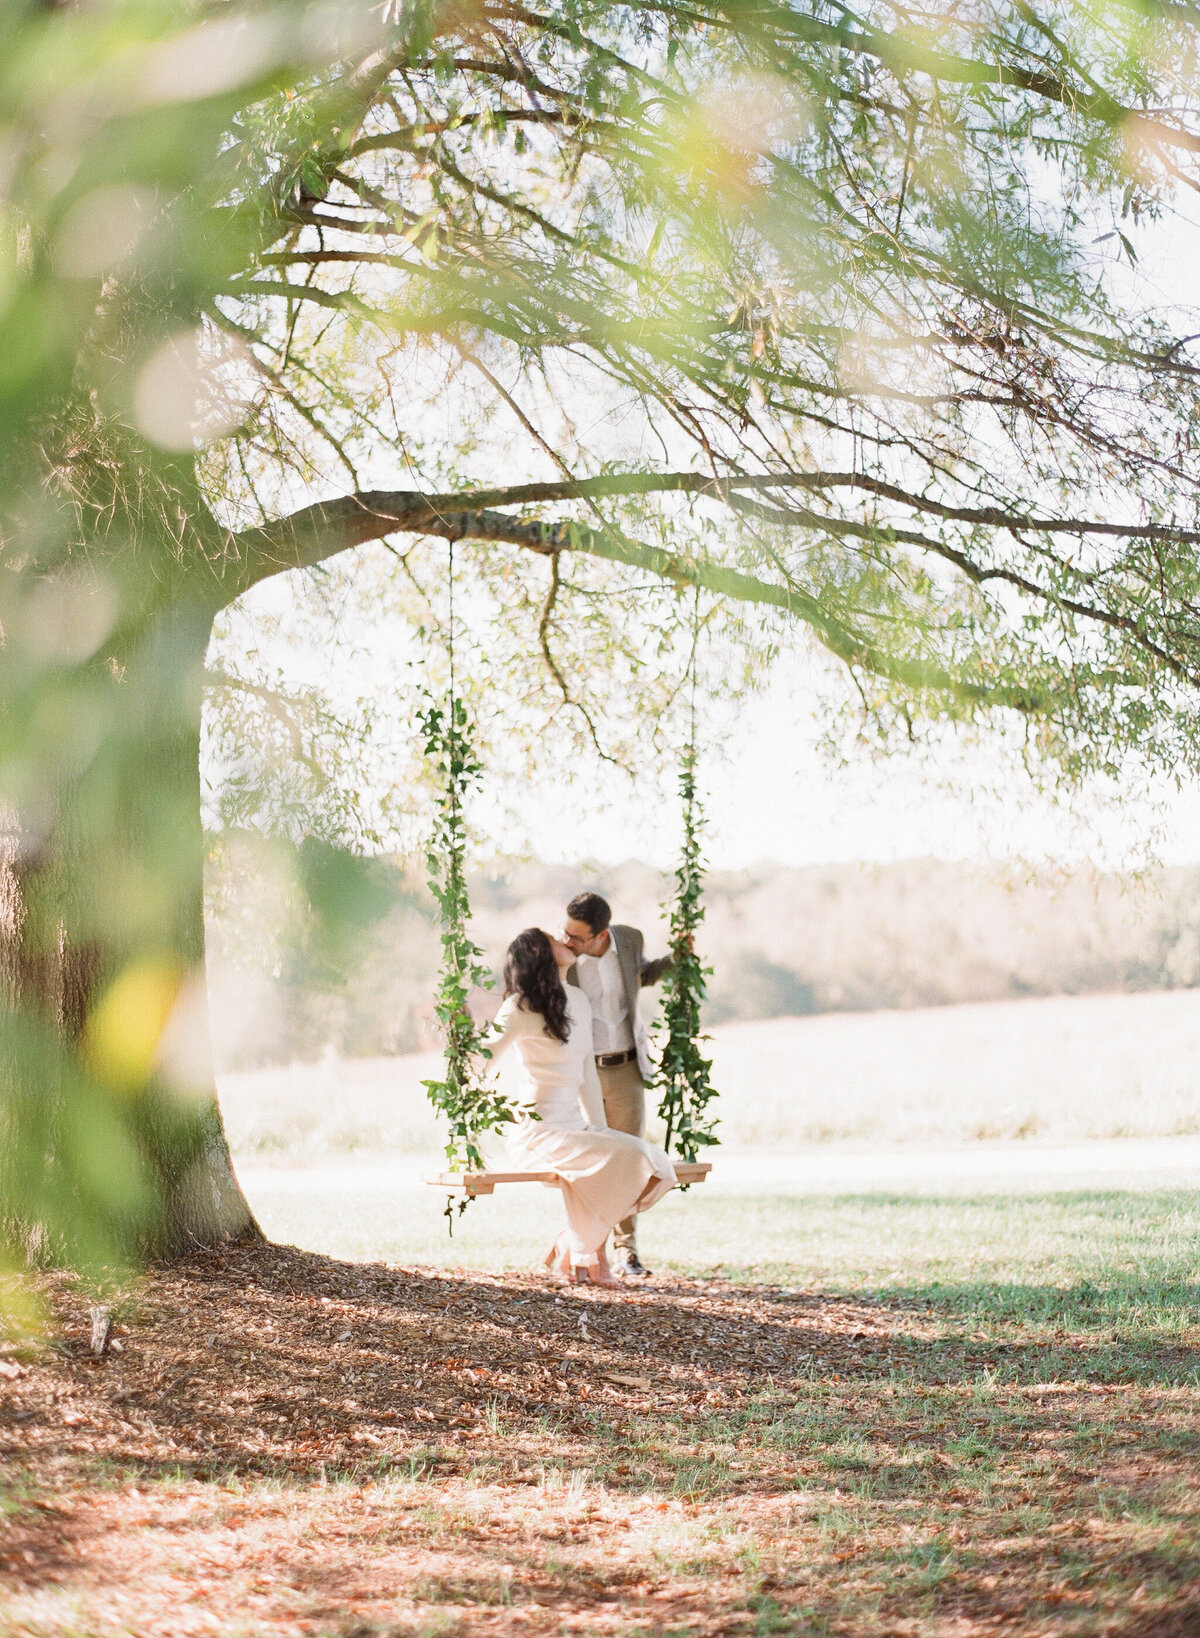 French Vineyard Engagement Photography at The Meadows in Raleigh, NC 1